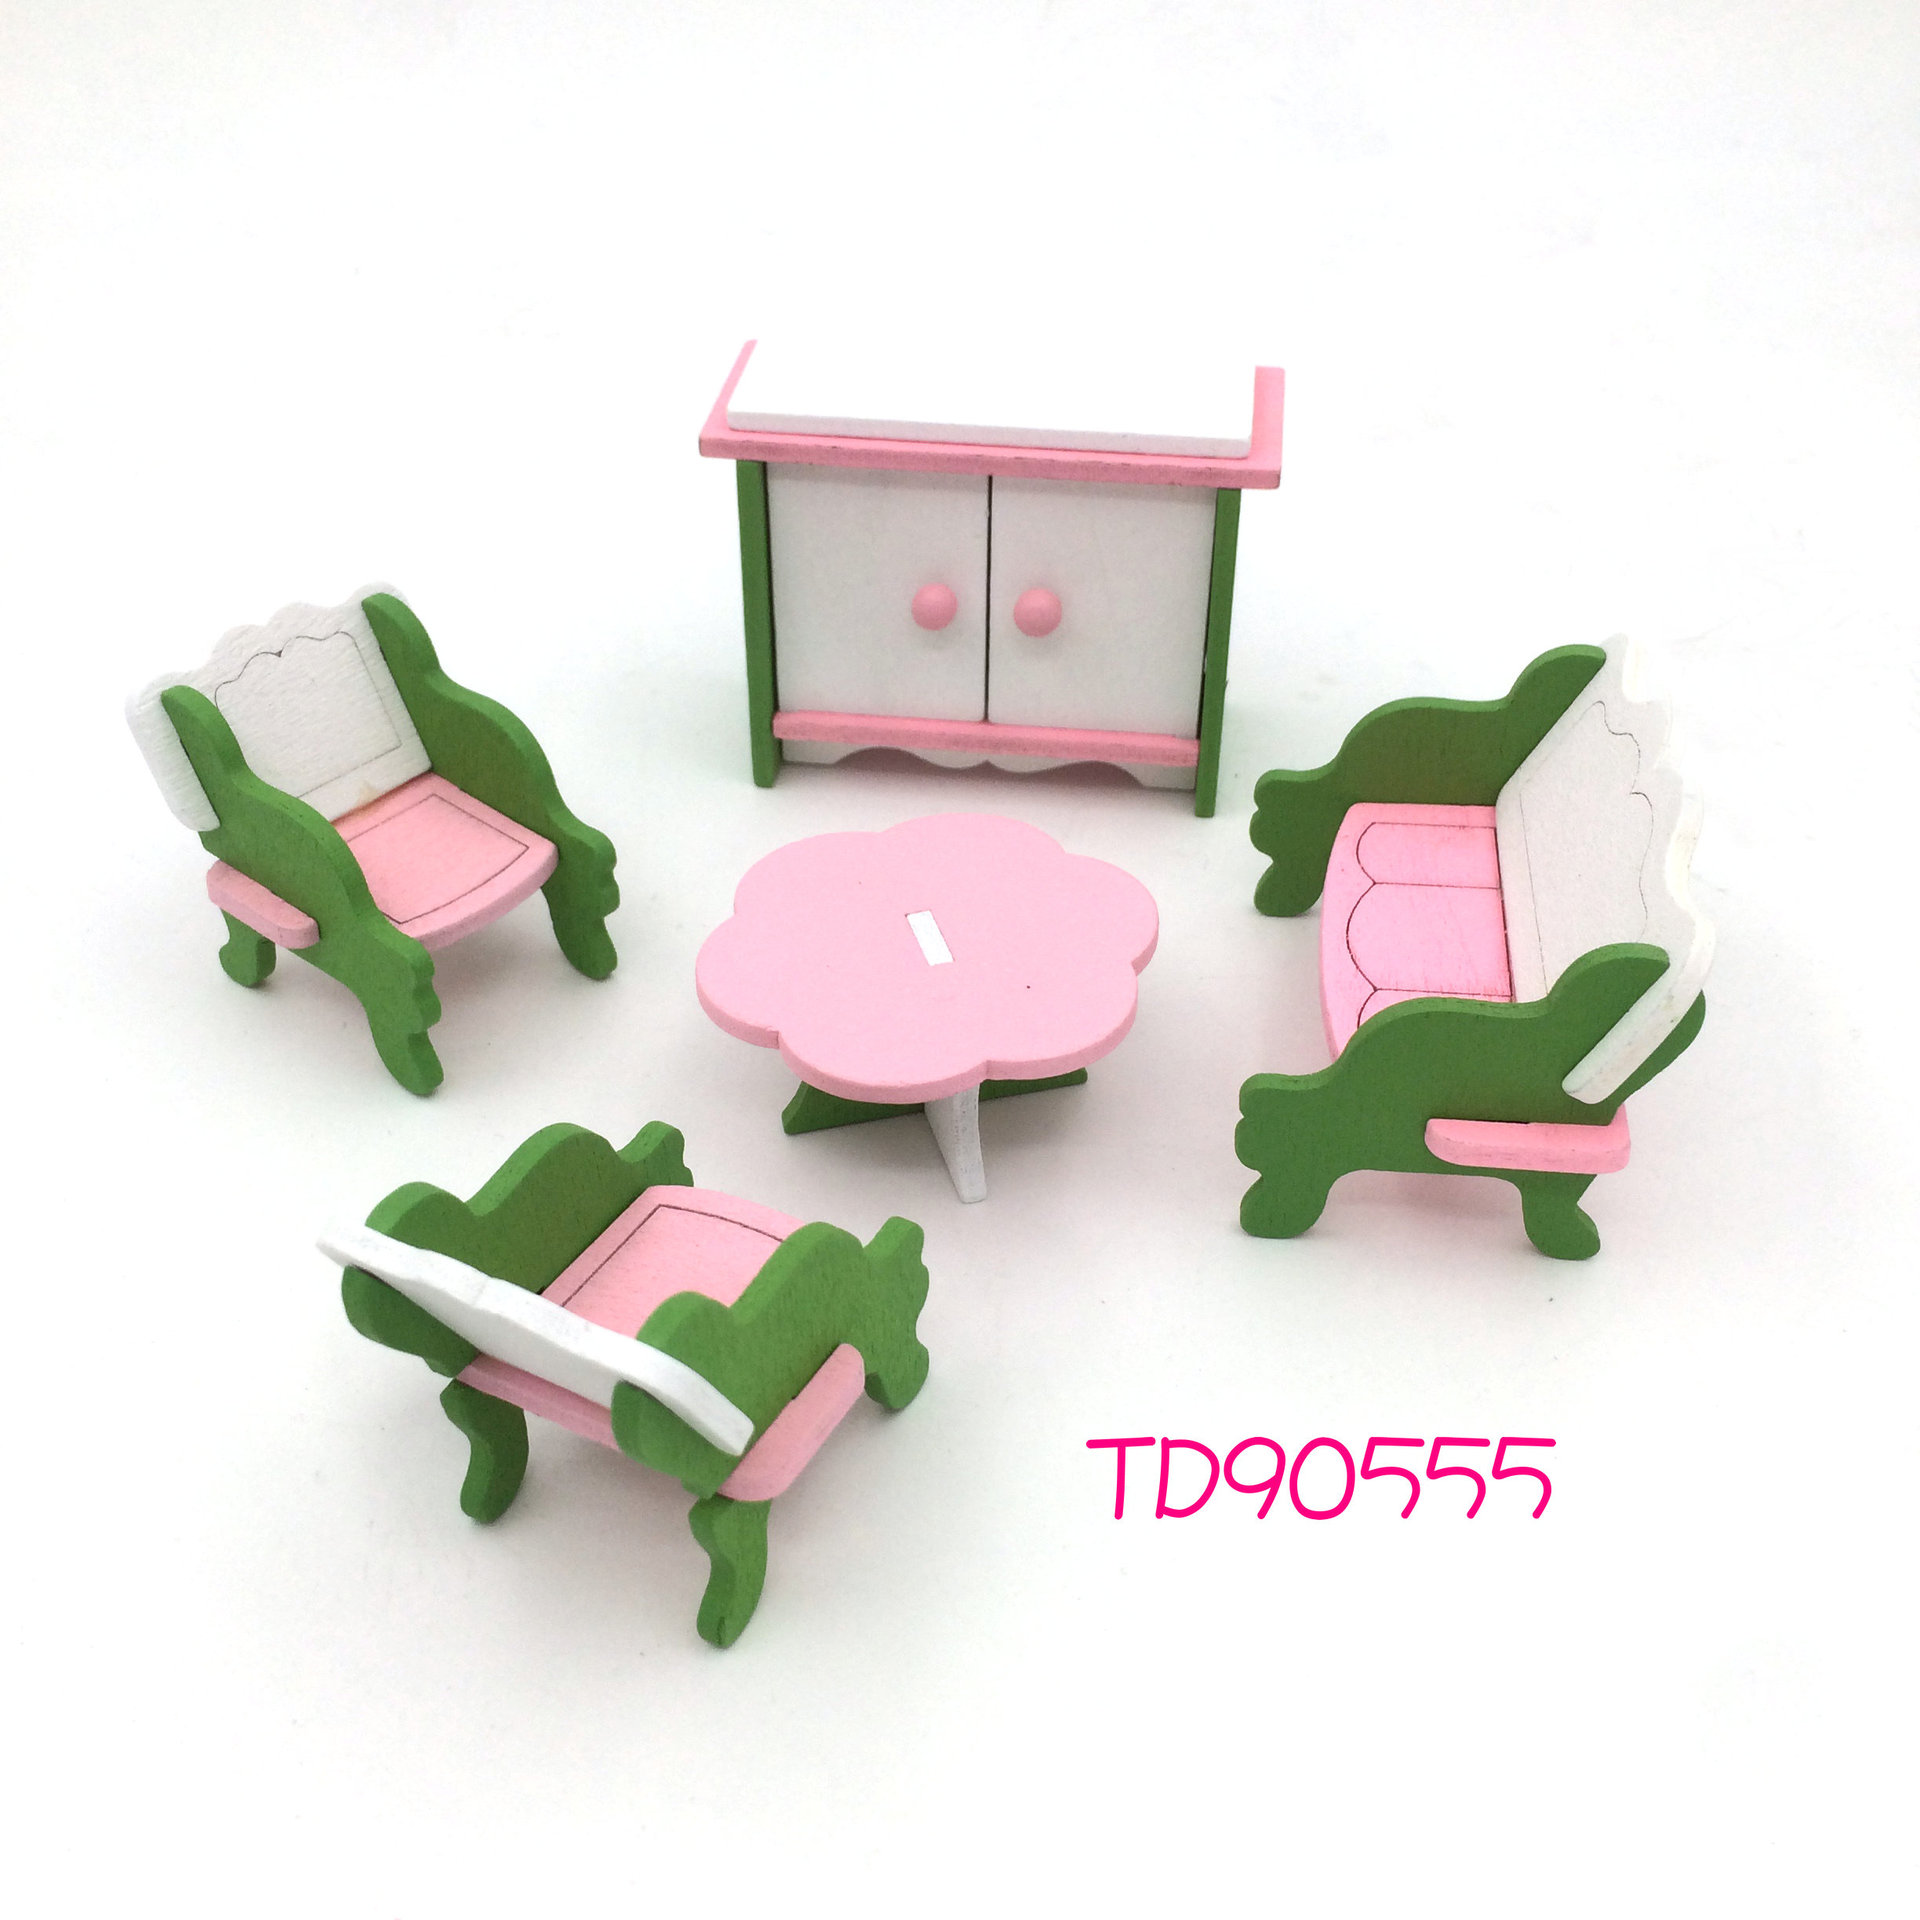 Kids Bedroom Furniture Kids Wooden Toys Online: Aliexpress.com : Buy Wooden Mini Furniture Set Kids Play